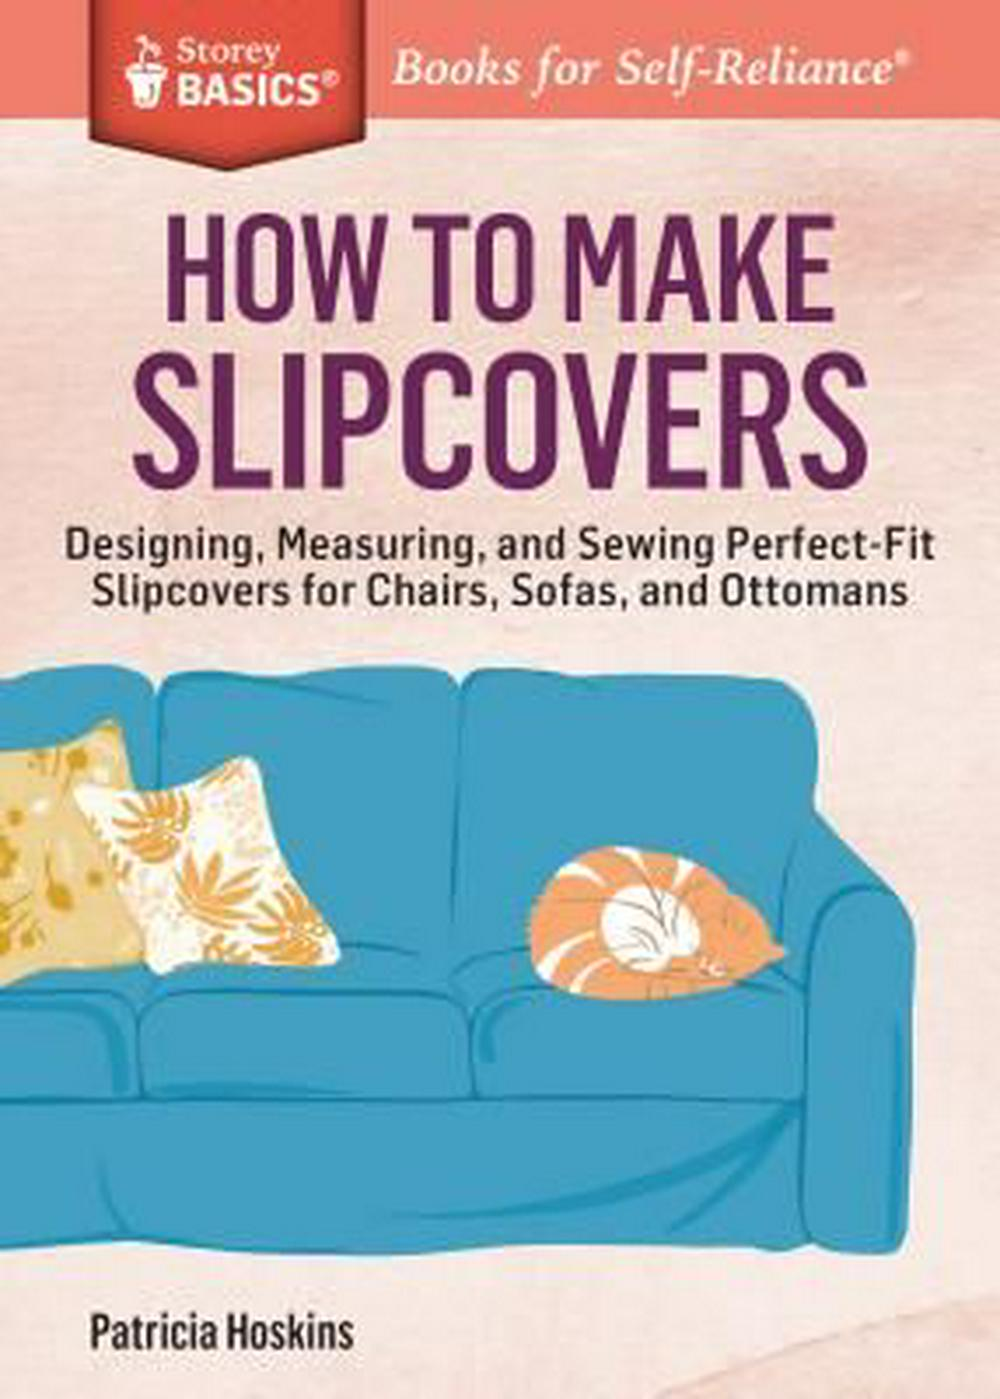 How to Make Slipcovers: Designing, Measuring, and Sewing Perfect-Fit Slipcovers for Chairs, Sofas, and Ottomans. a Storey Basics(r) Title by Patricia Hoskins, ISBN: 9781612125251